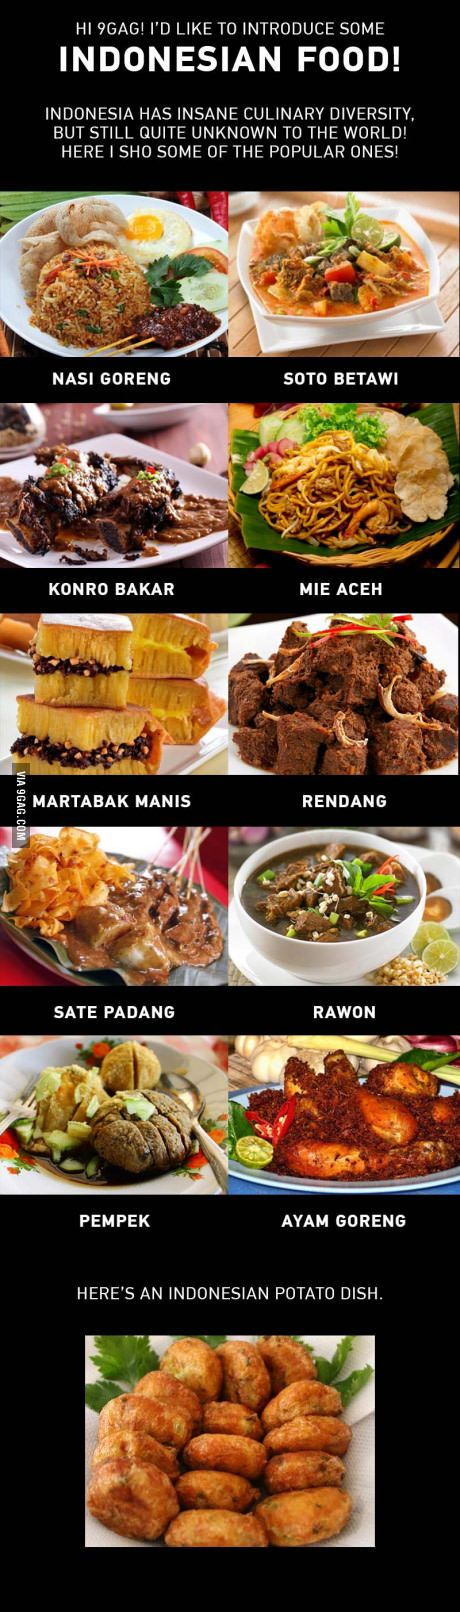 Indonesian food! ❤ I hope you guys get to taste them!